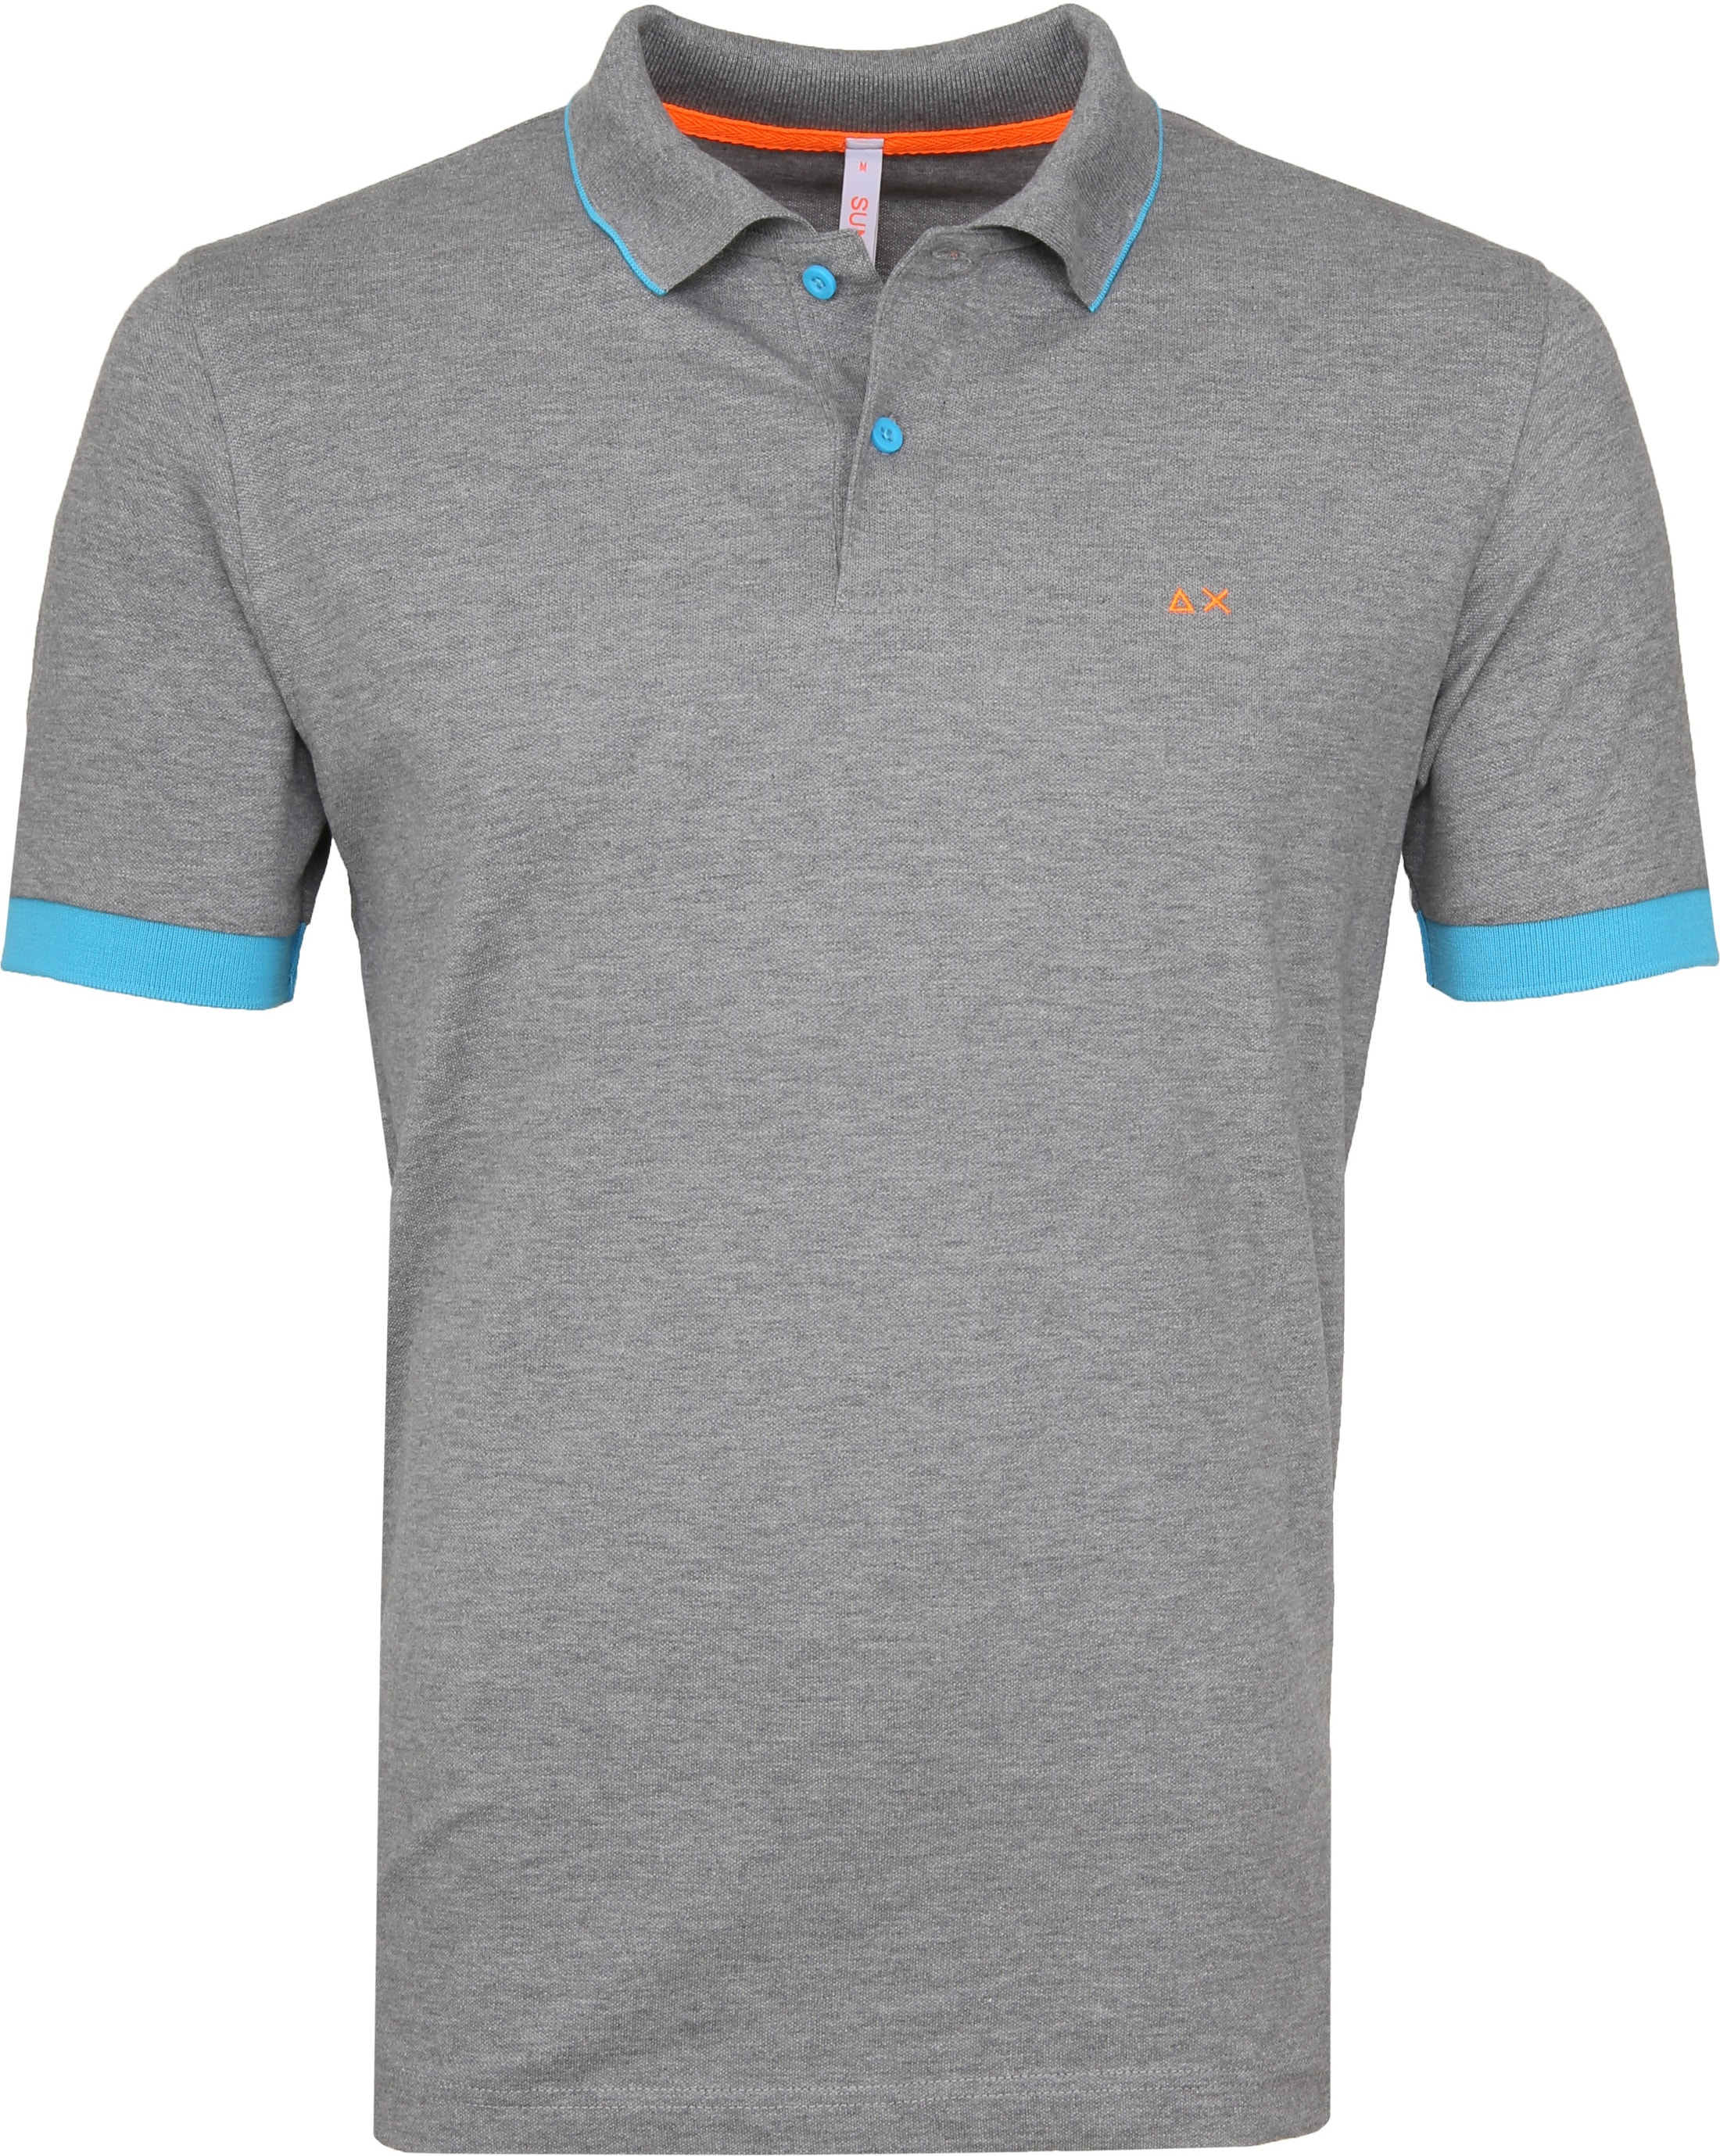 Sun68 Poloshirt Small Stripes Fluo Grey foto 0